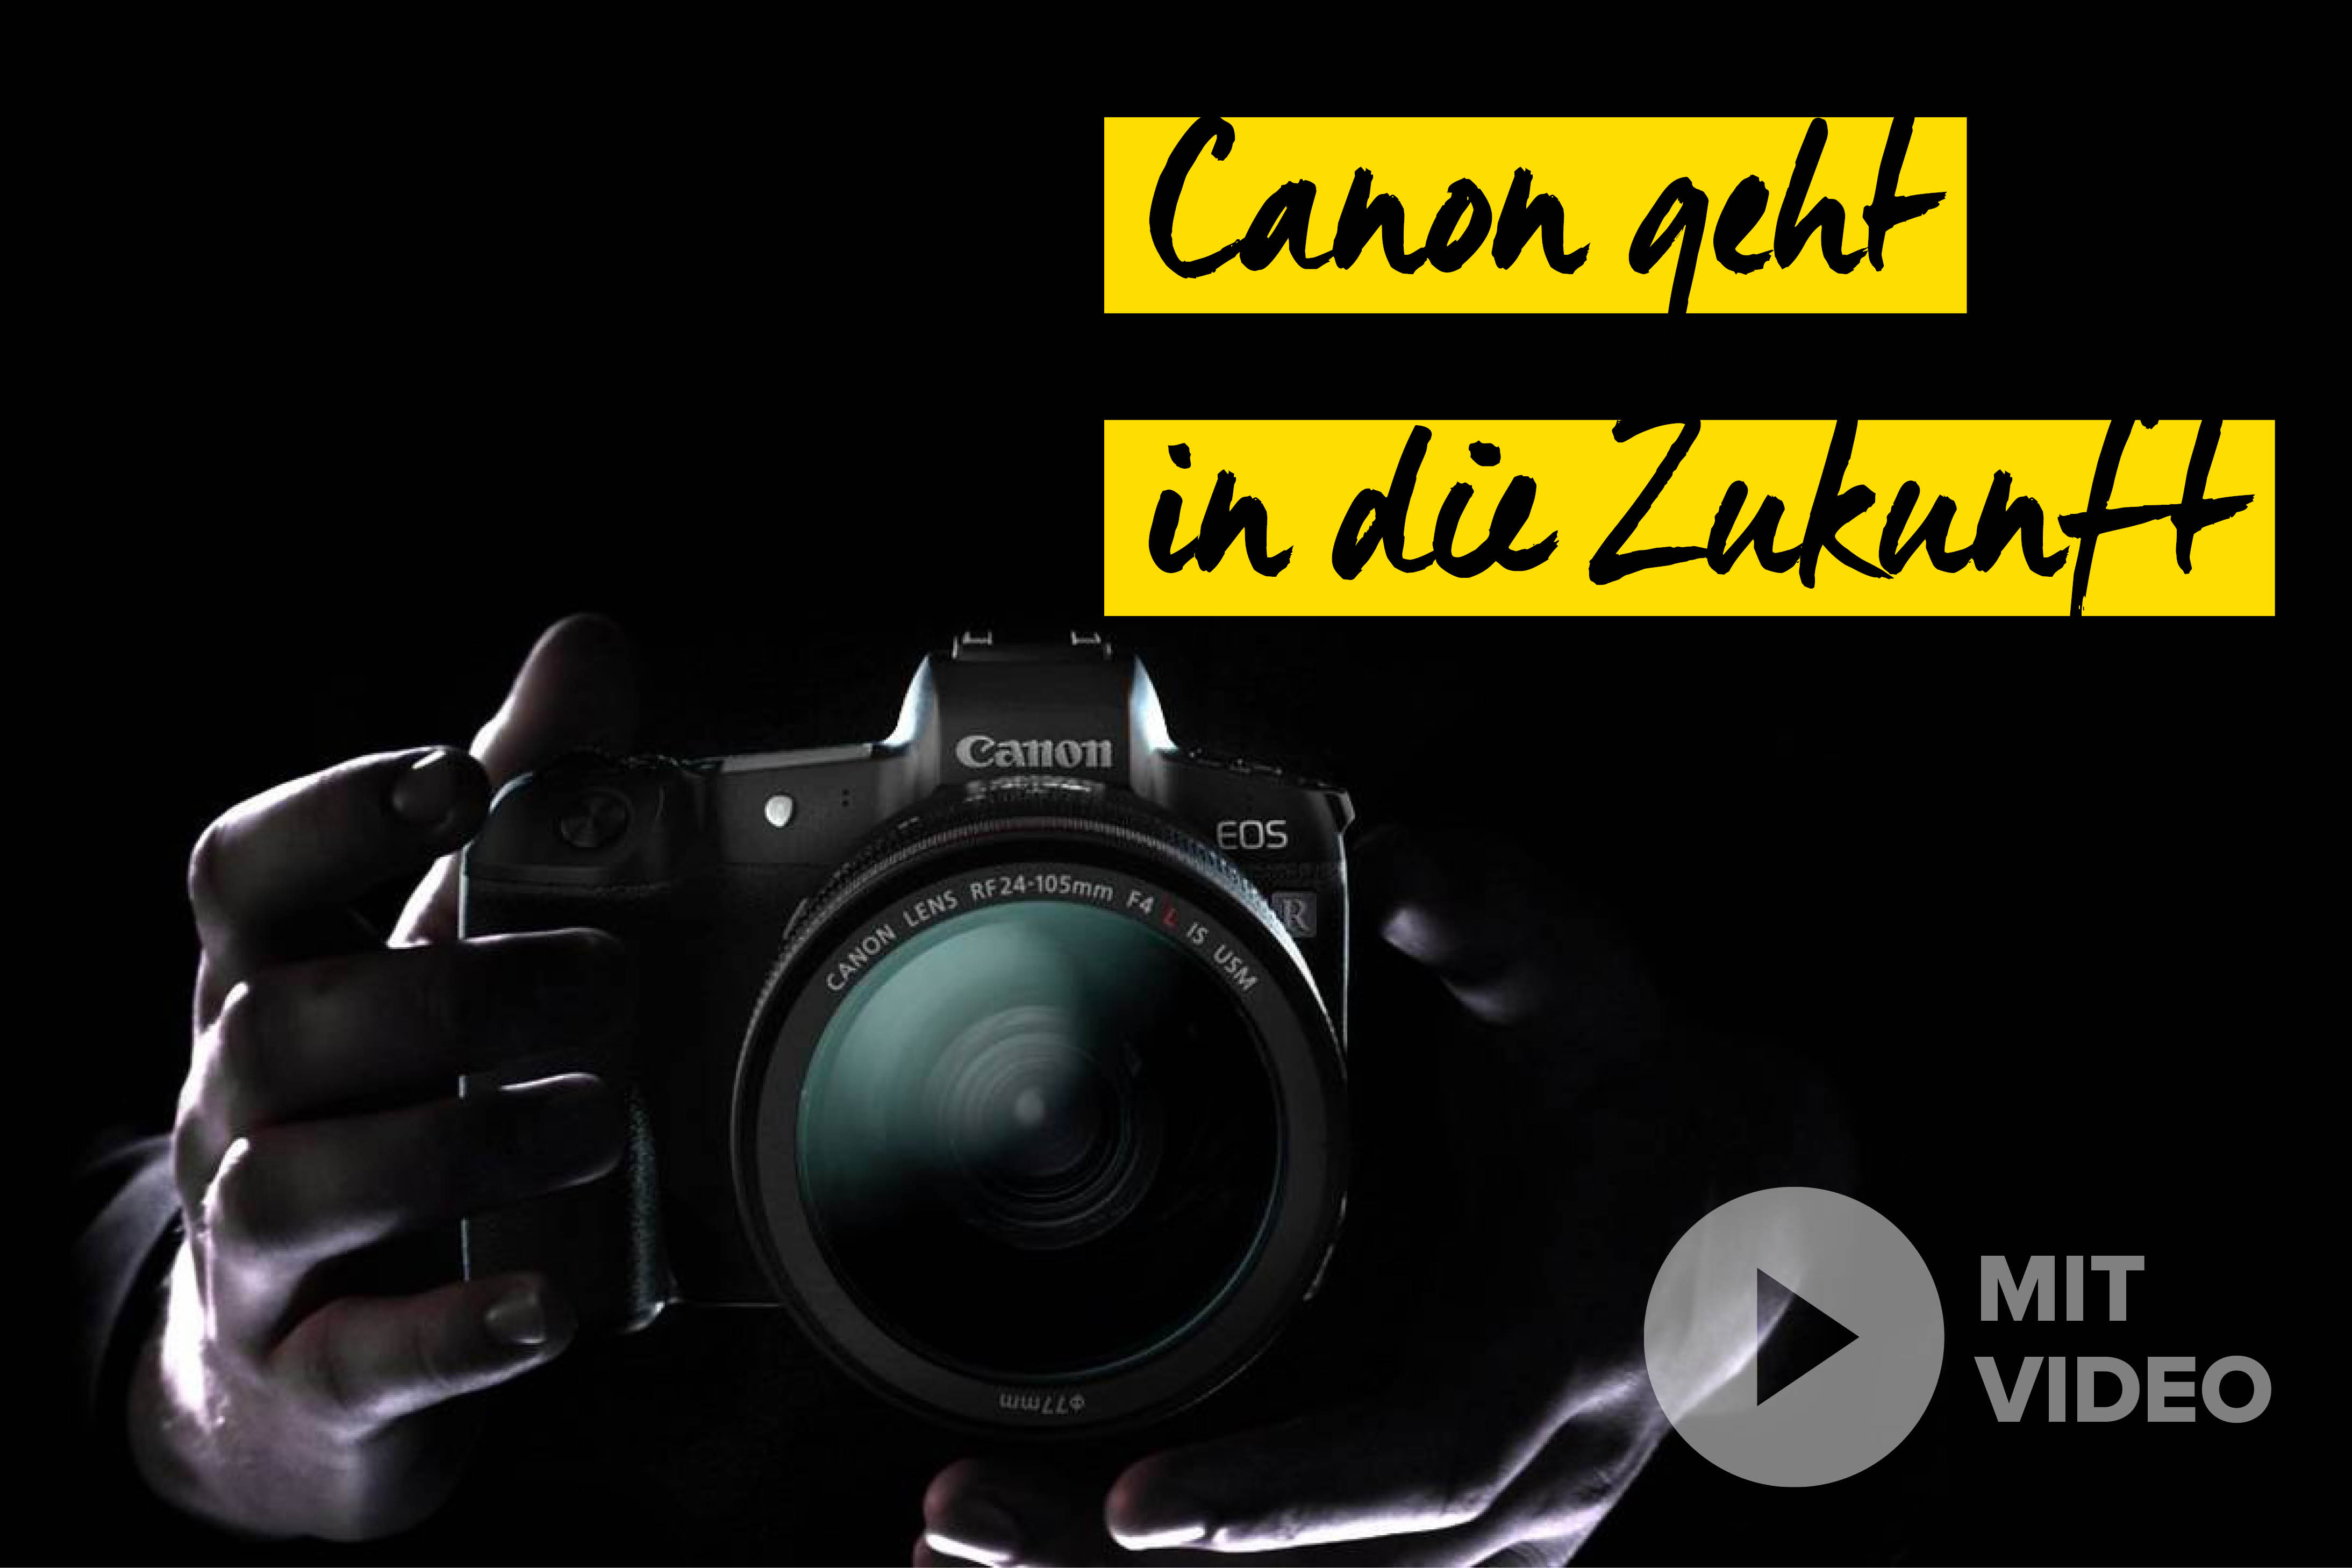 neues Canon System